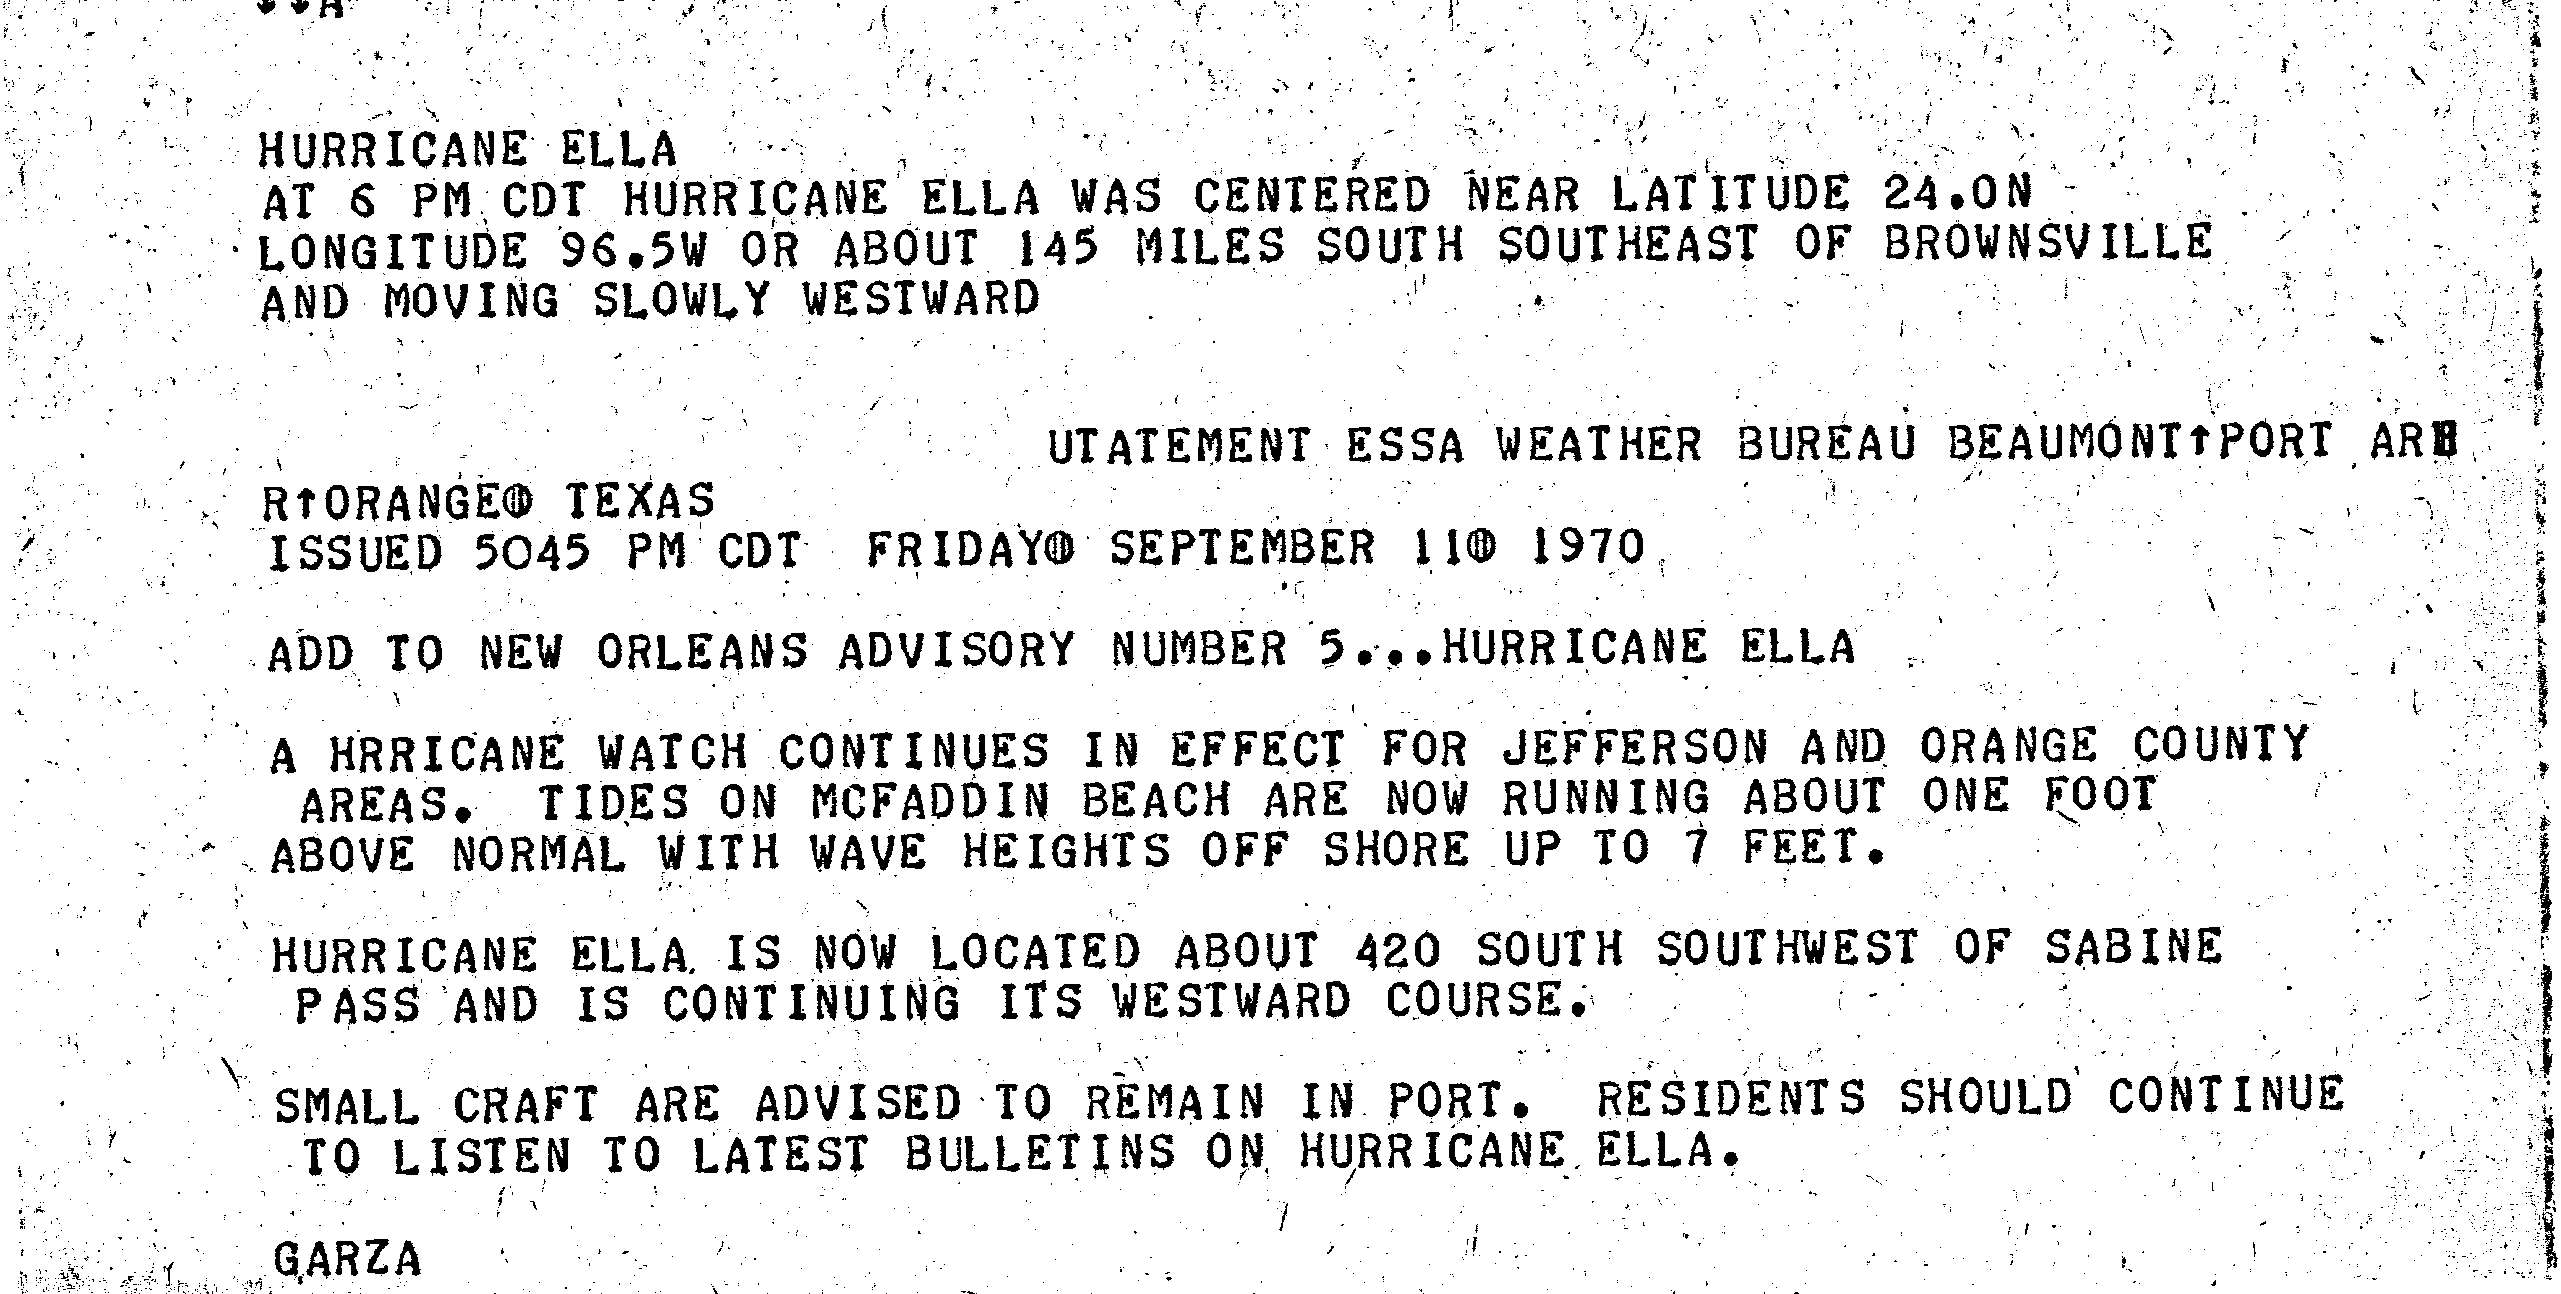 1970 Atlantic hurricane season